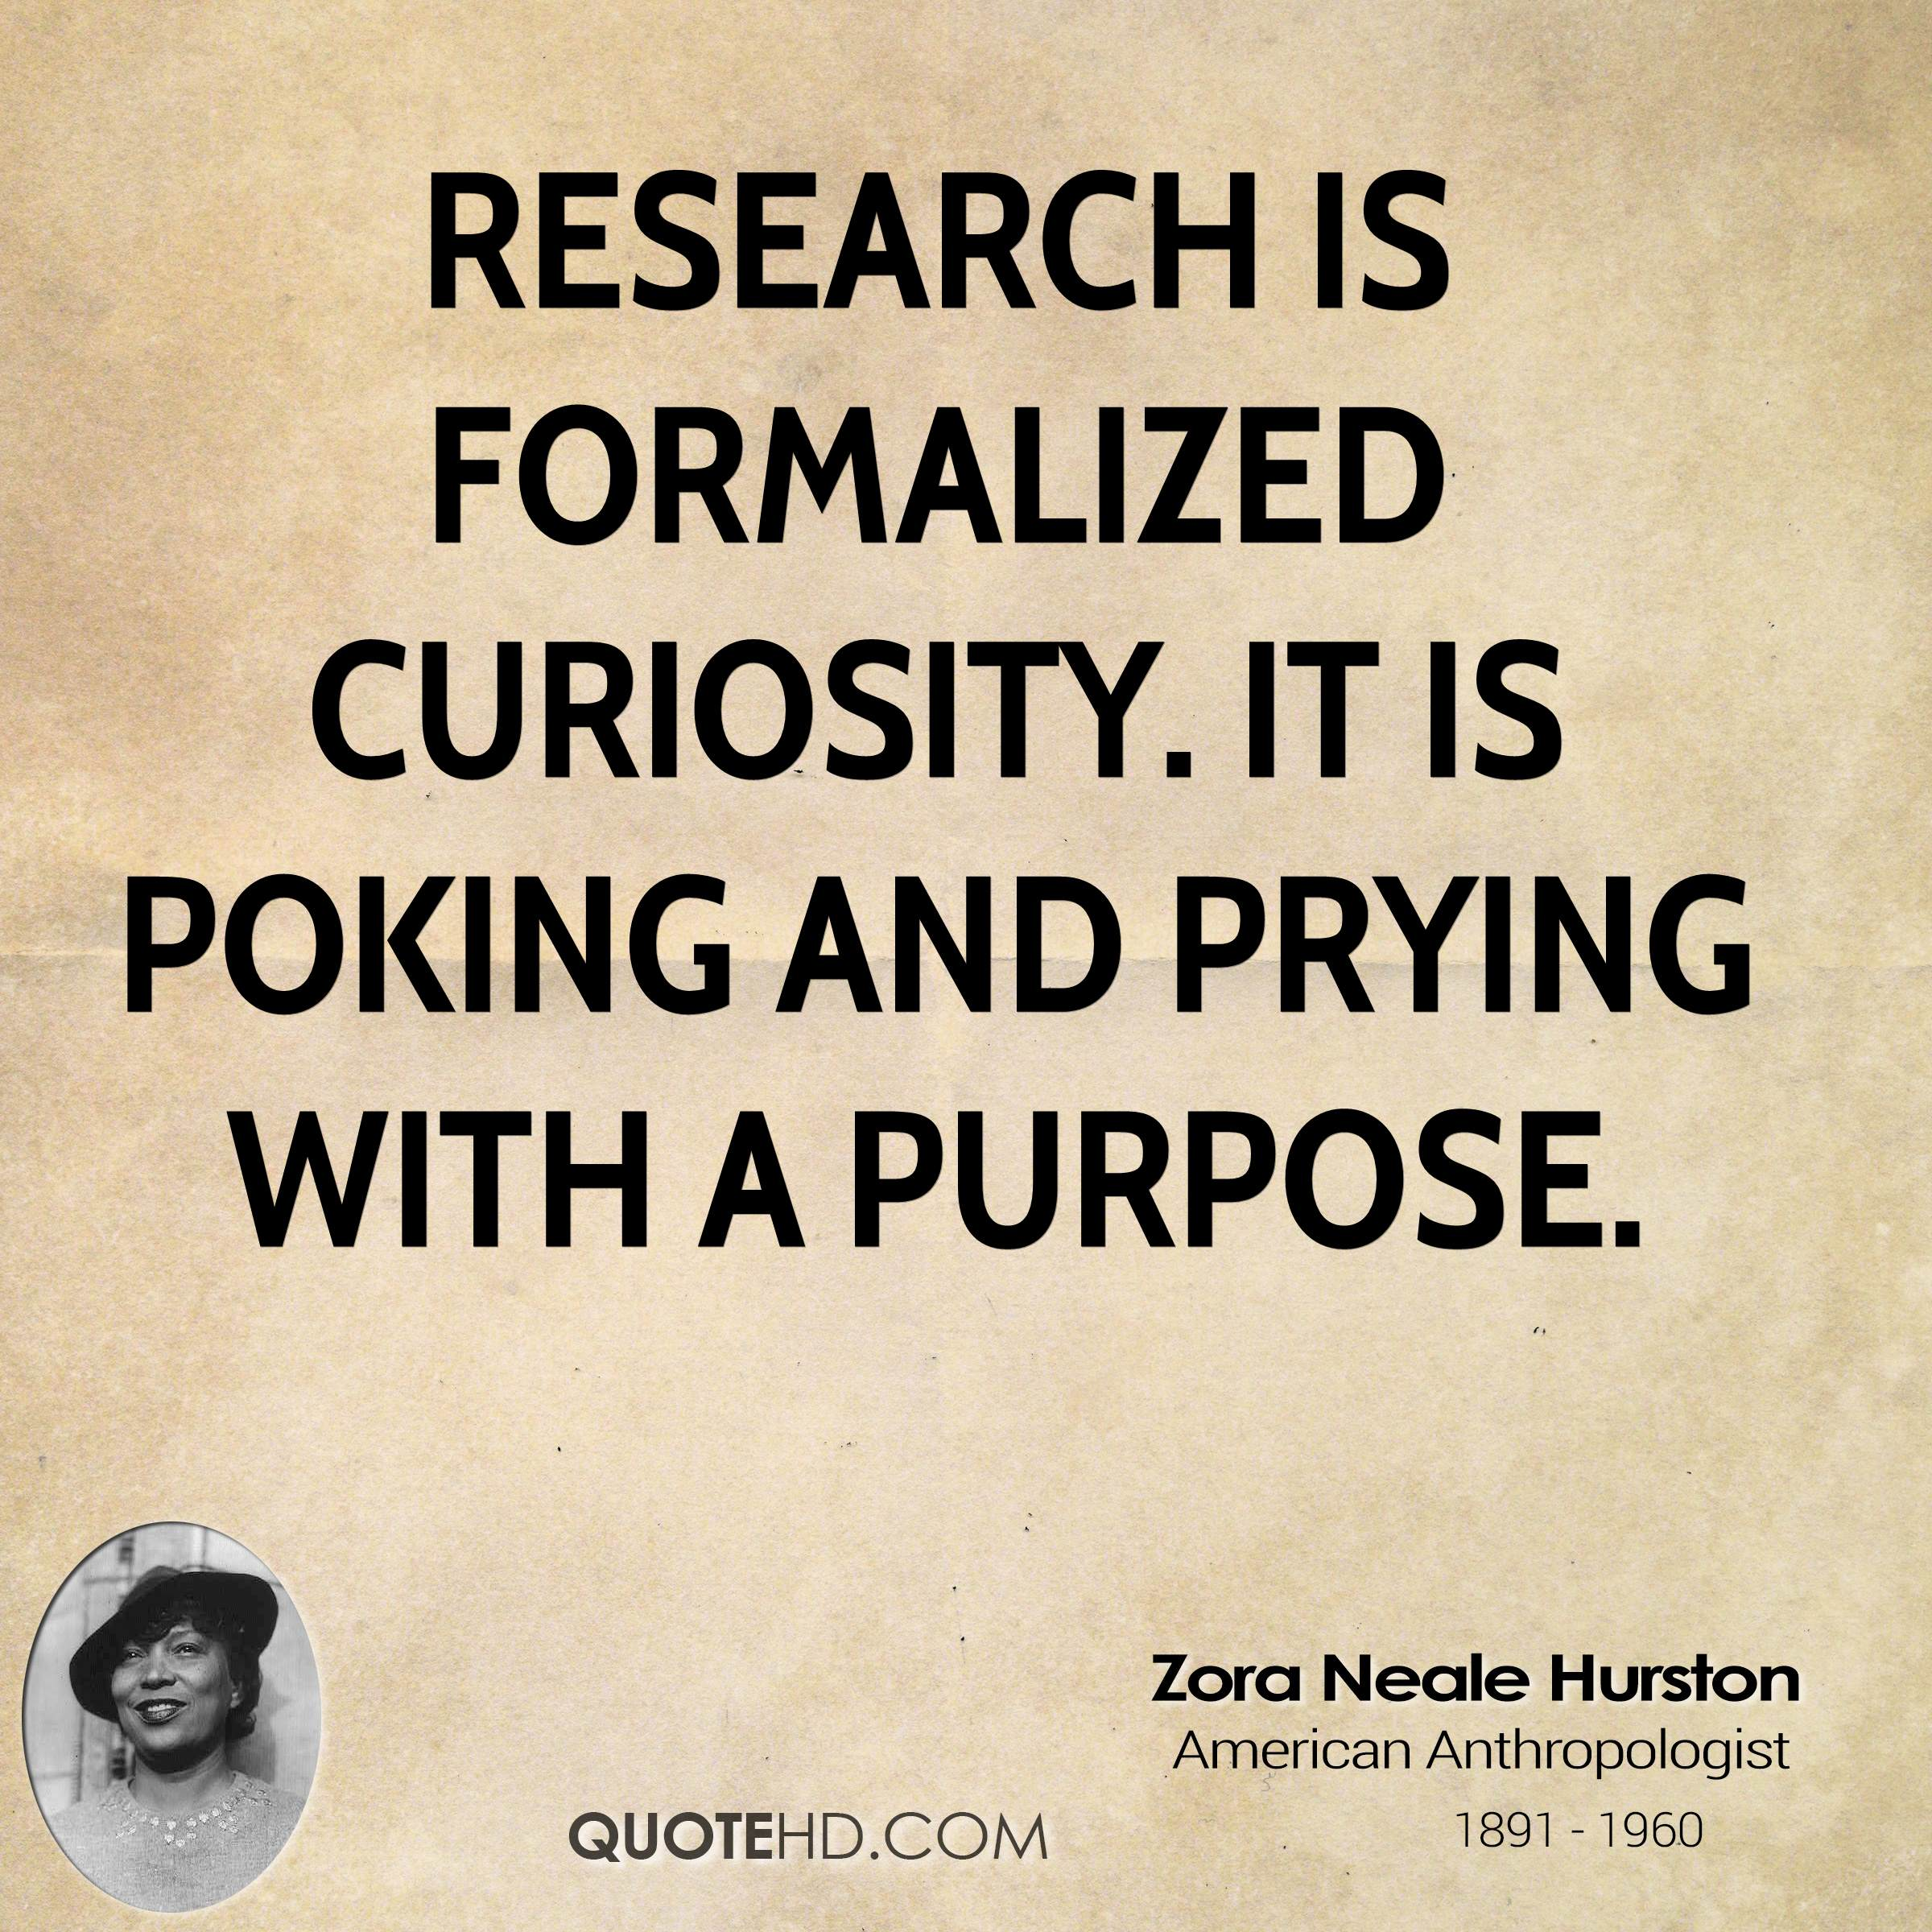 Quotes On Research Zora Neale Hurston Quotes  Quotehd